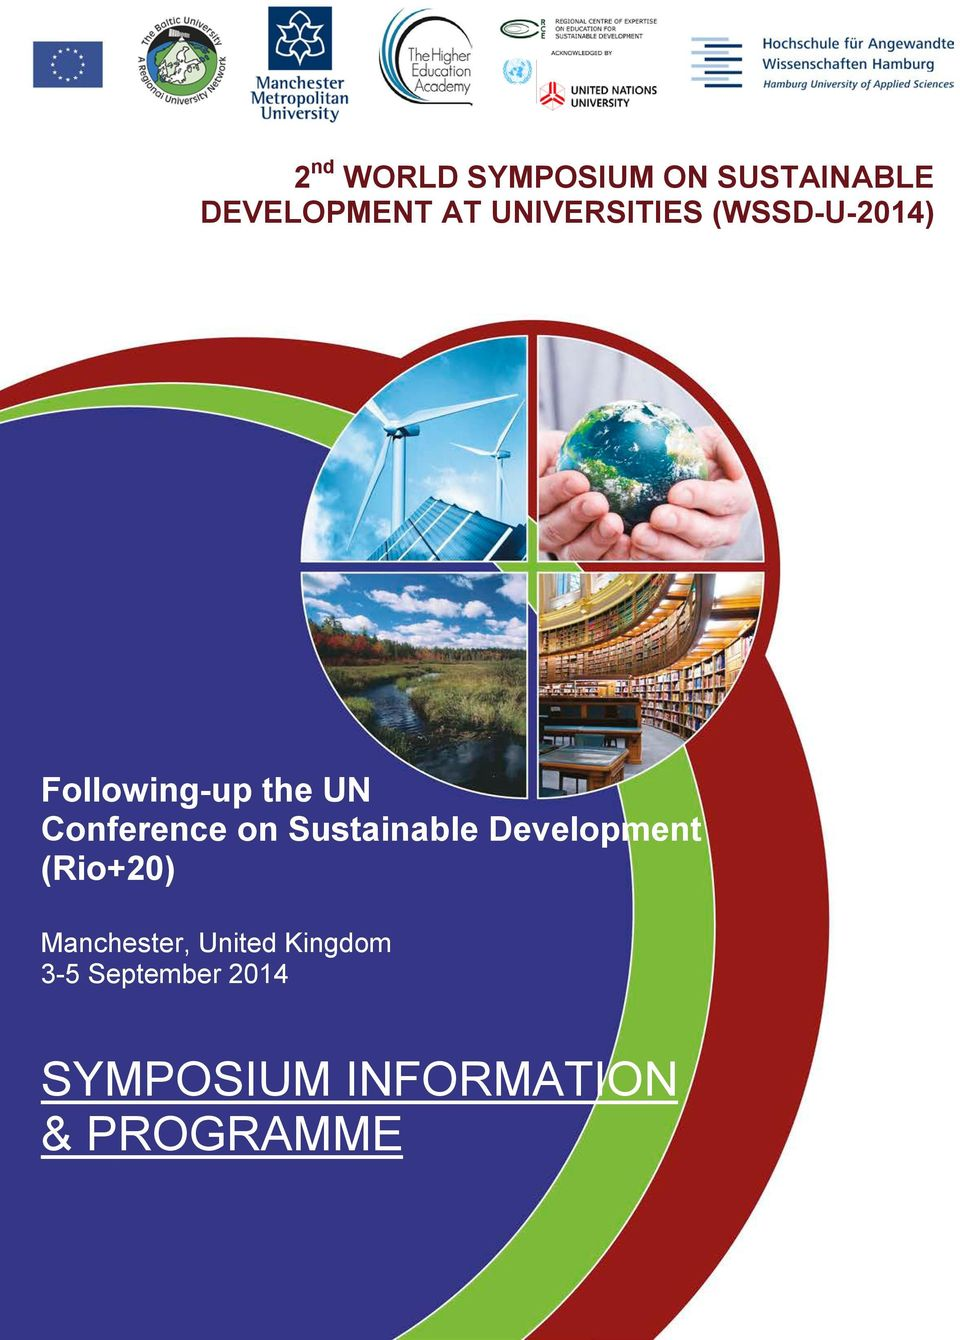 Conference on Sustainable Development (Rio+20)